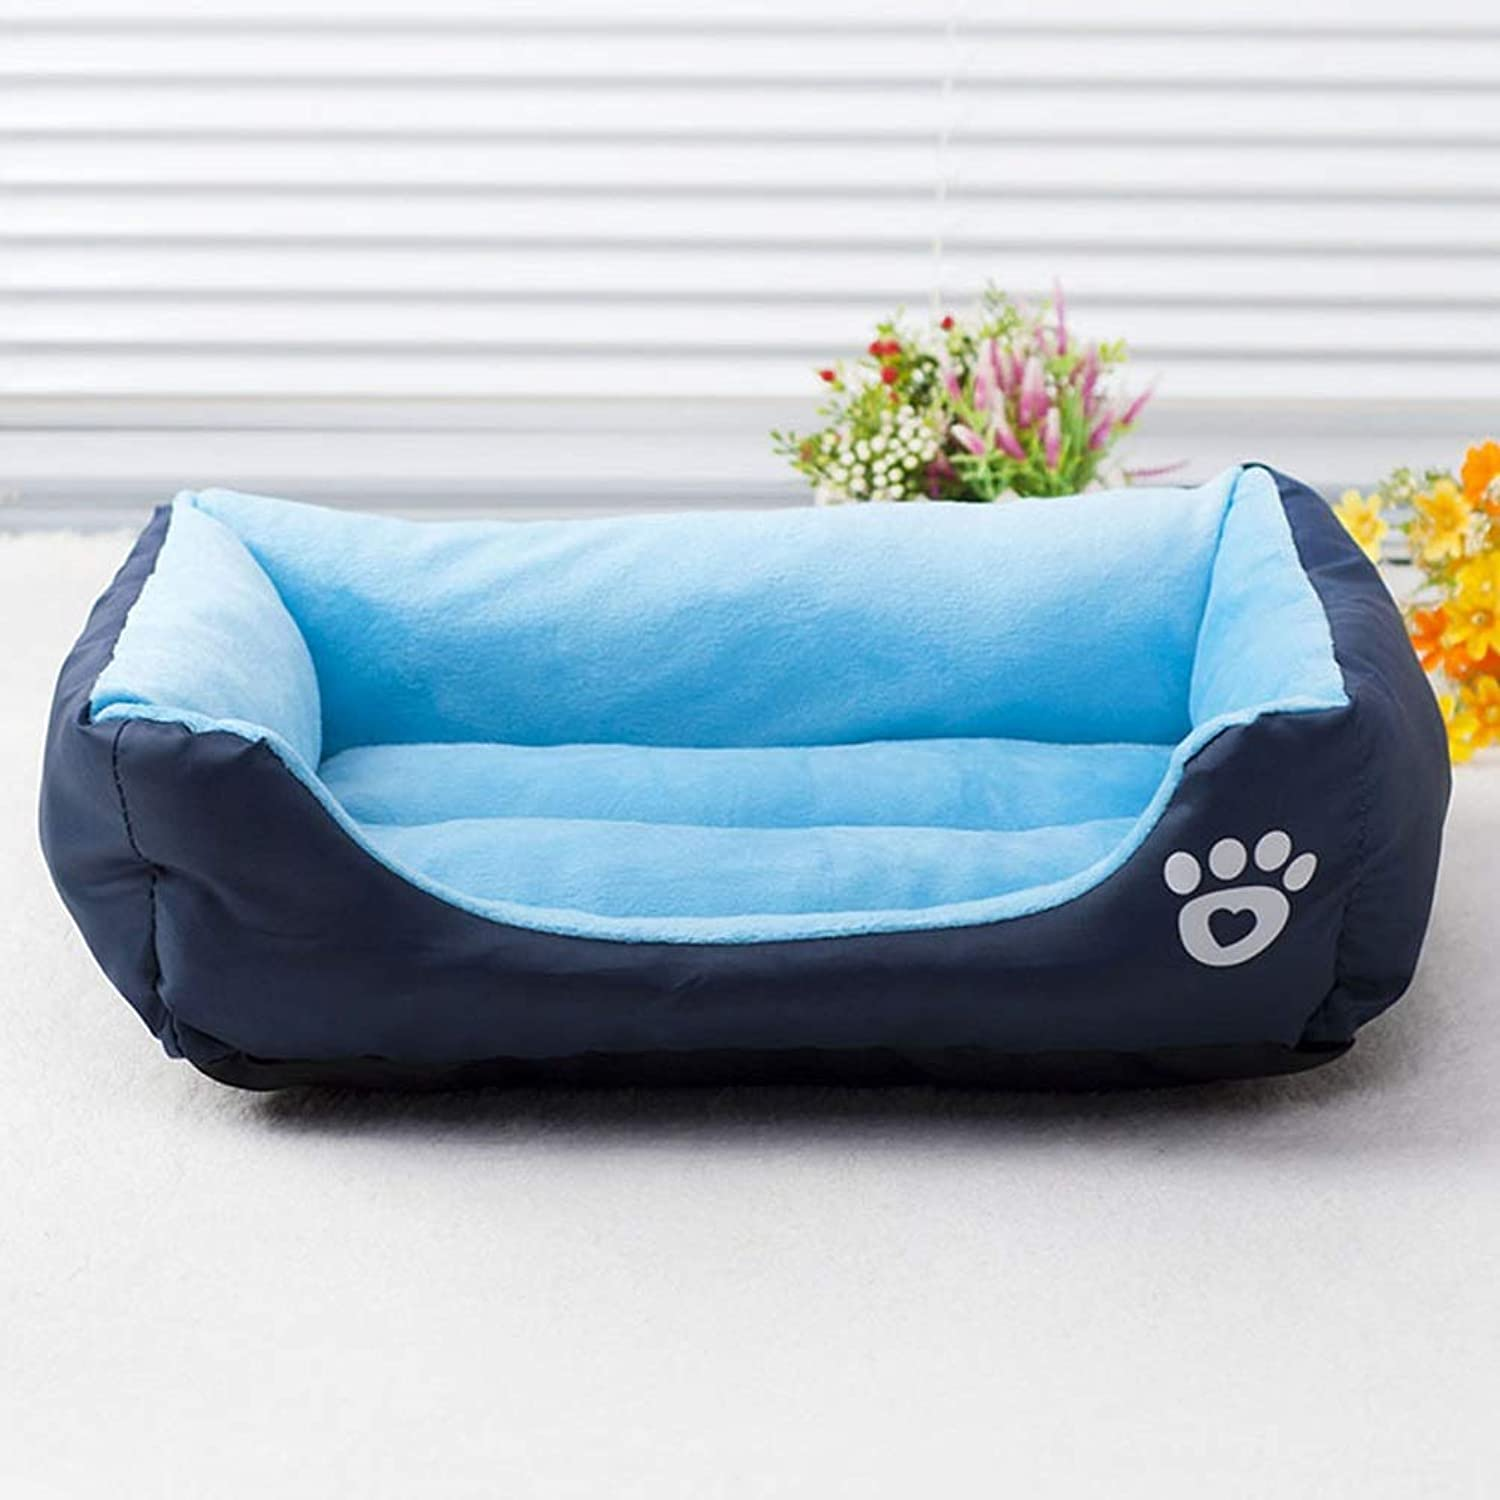 QYQ Portable Pet Mattress Nest Bed Blankets Dog Kennel Mats Cushion Pet Pads Comfortable And Warm Resistant to Bite Antiwrinkle to Use for Pets to Rest or Sleep in Winter (color   bluee, Size   S)